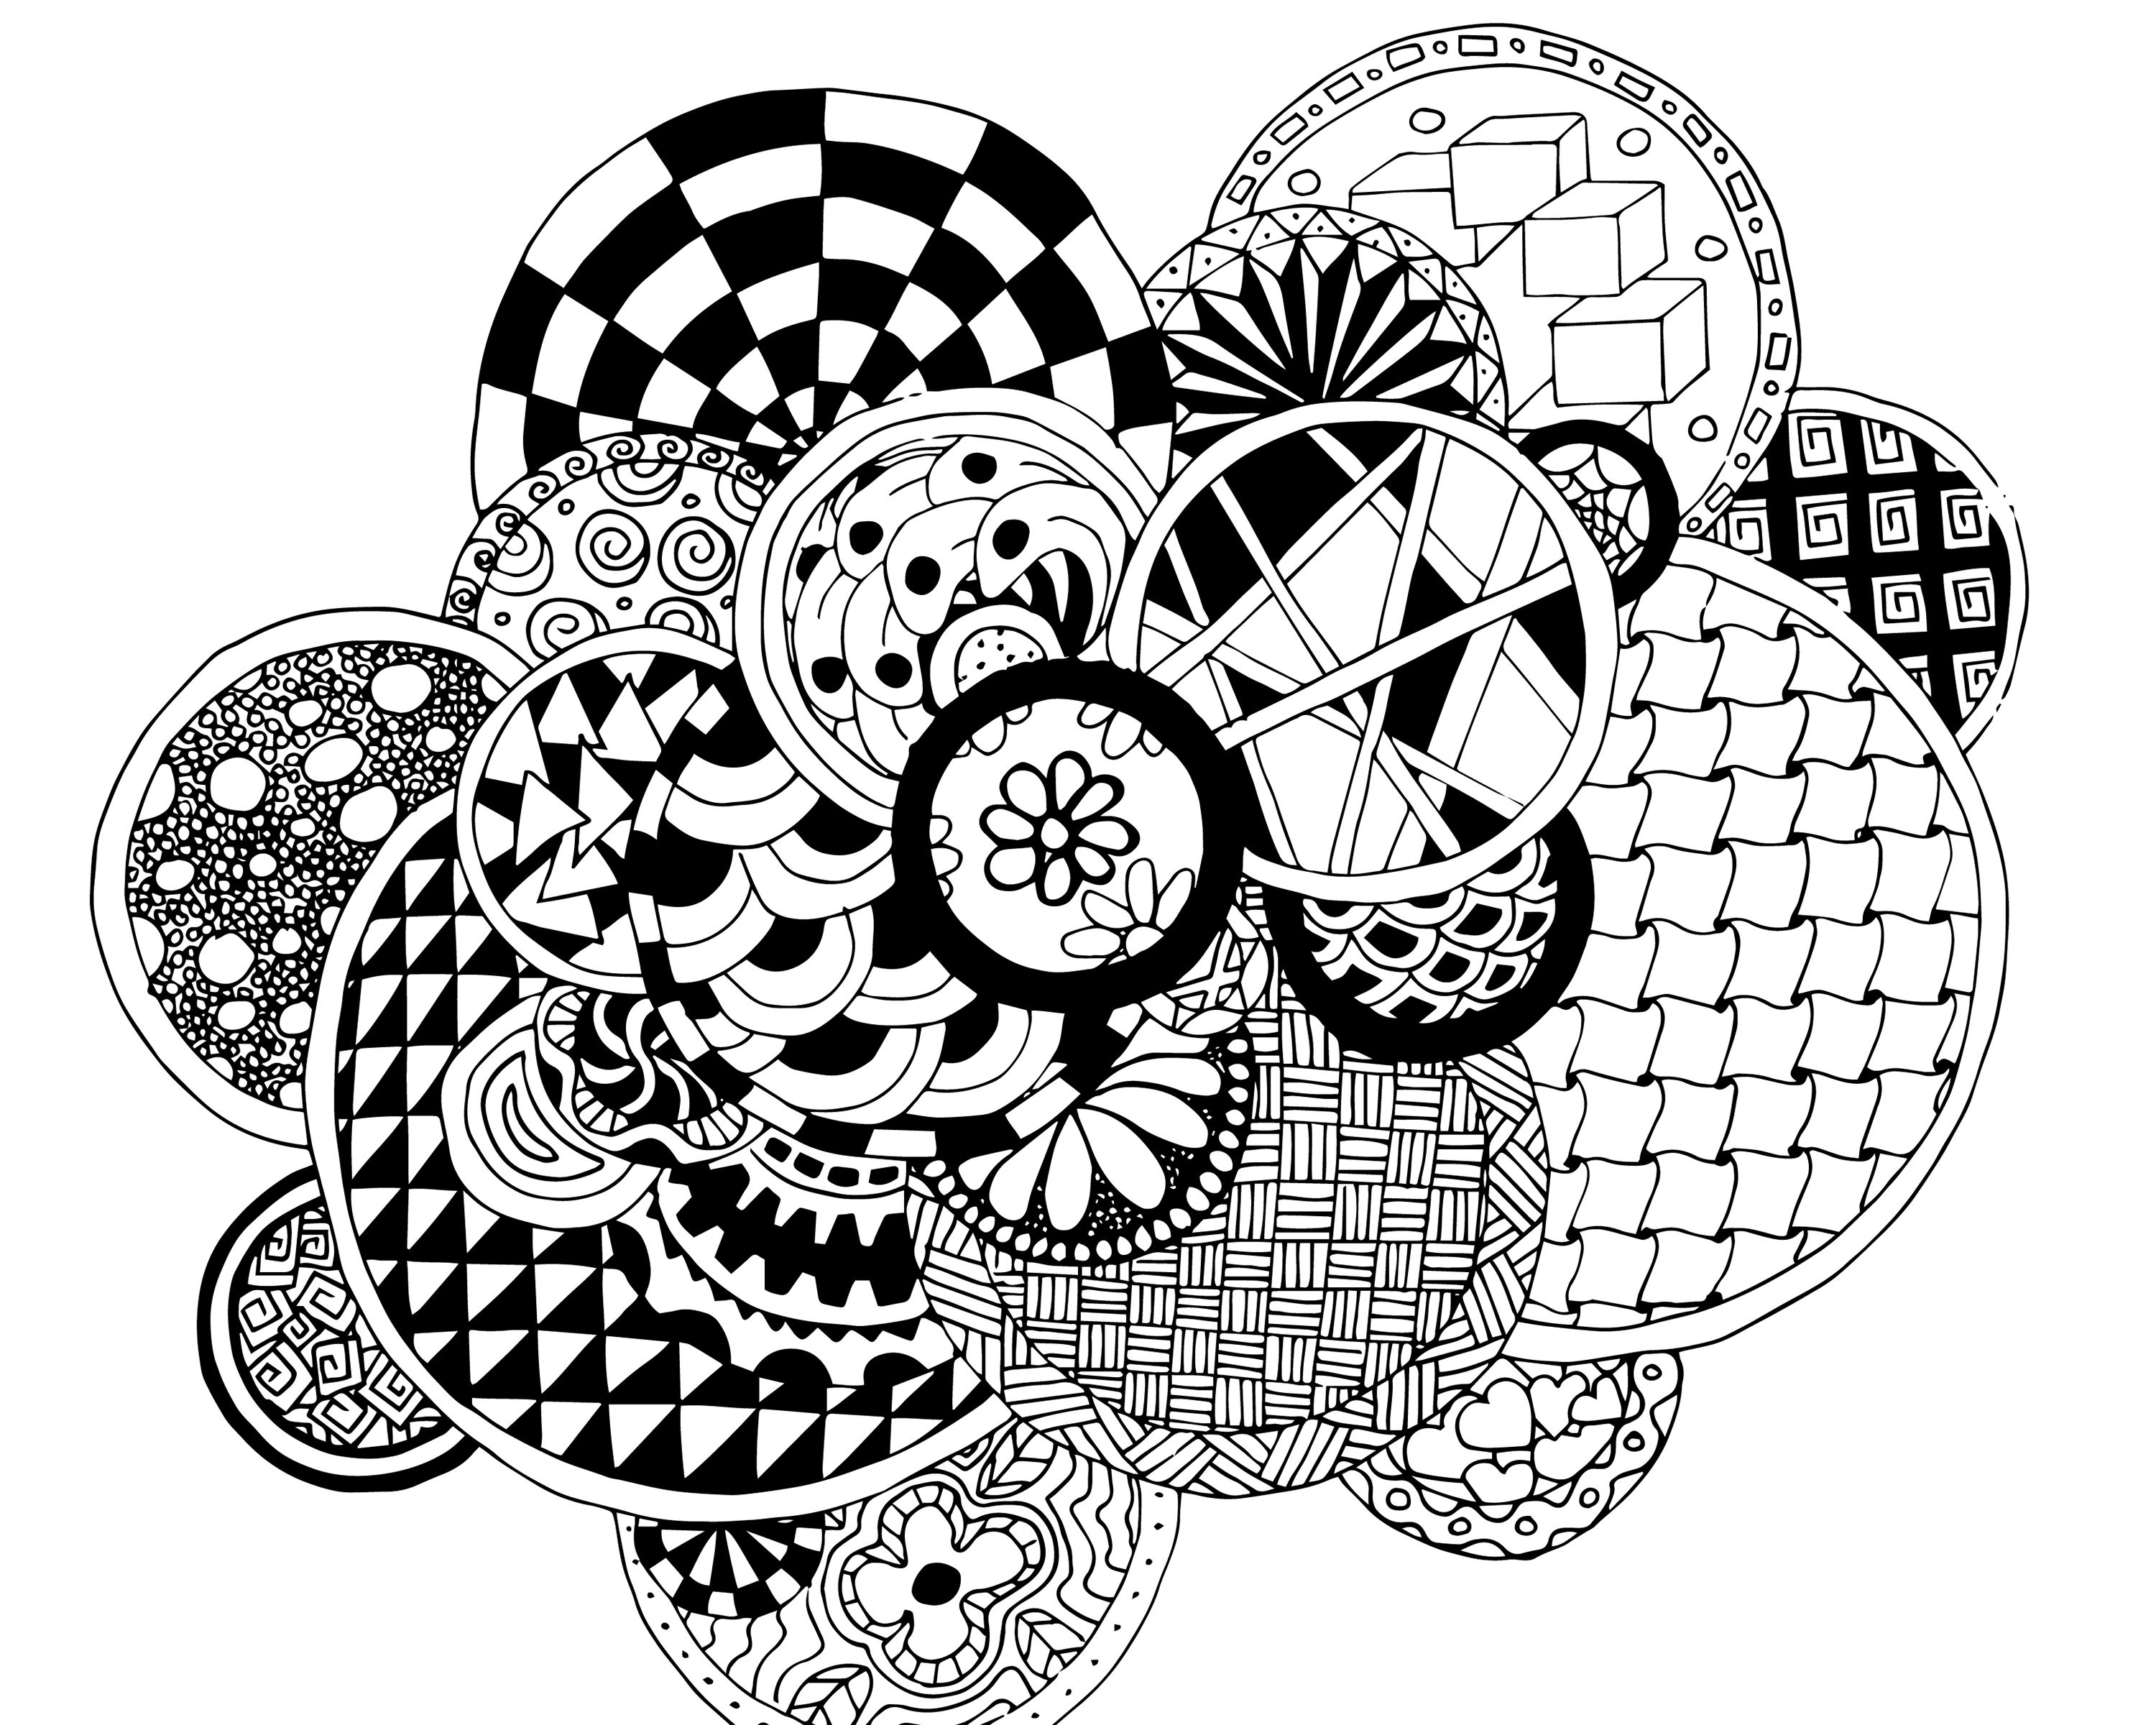 Free Circles Zen Tangle Doodles Adult Coloring Page Free Adult